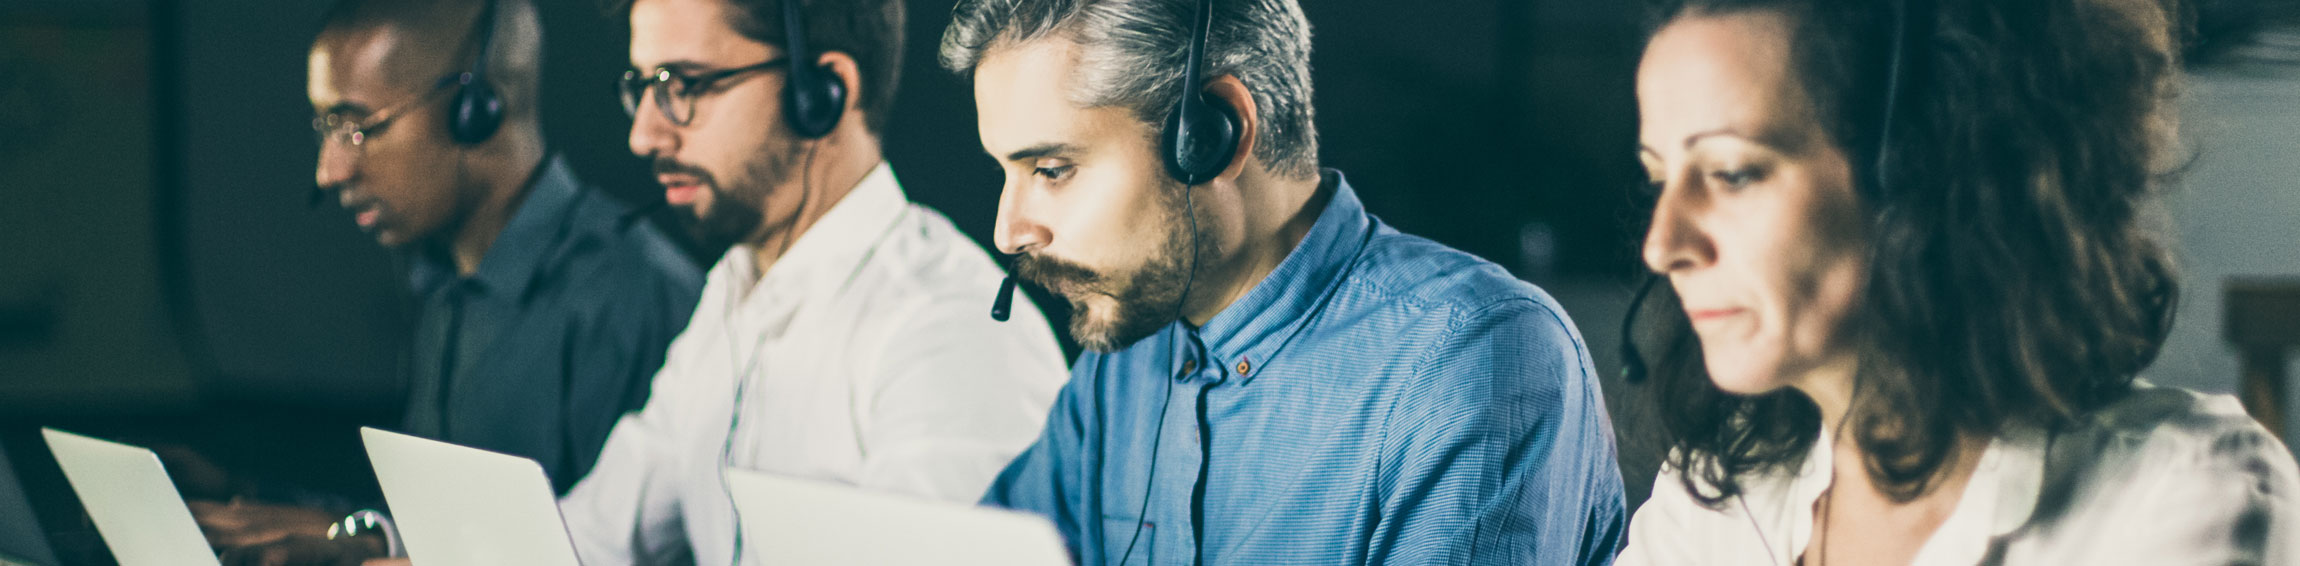 Redeem the customer experience with a good customer service apology